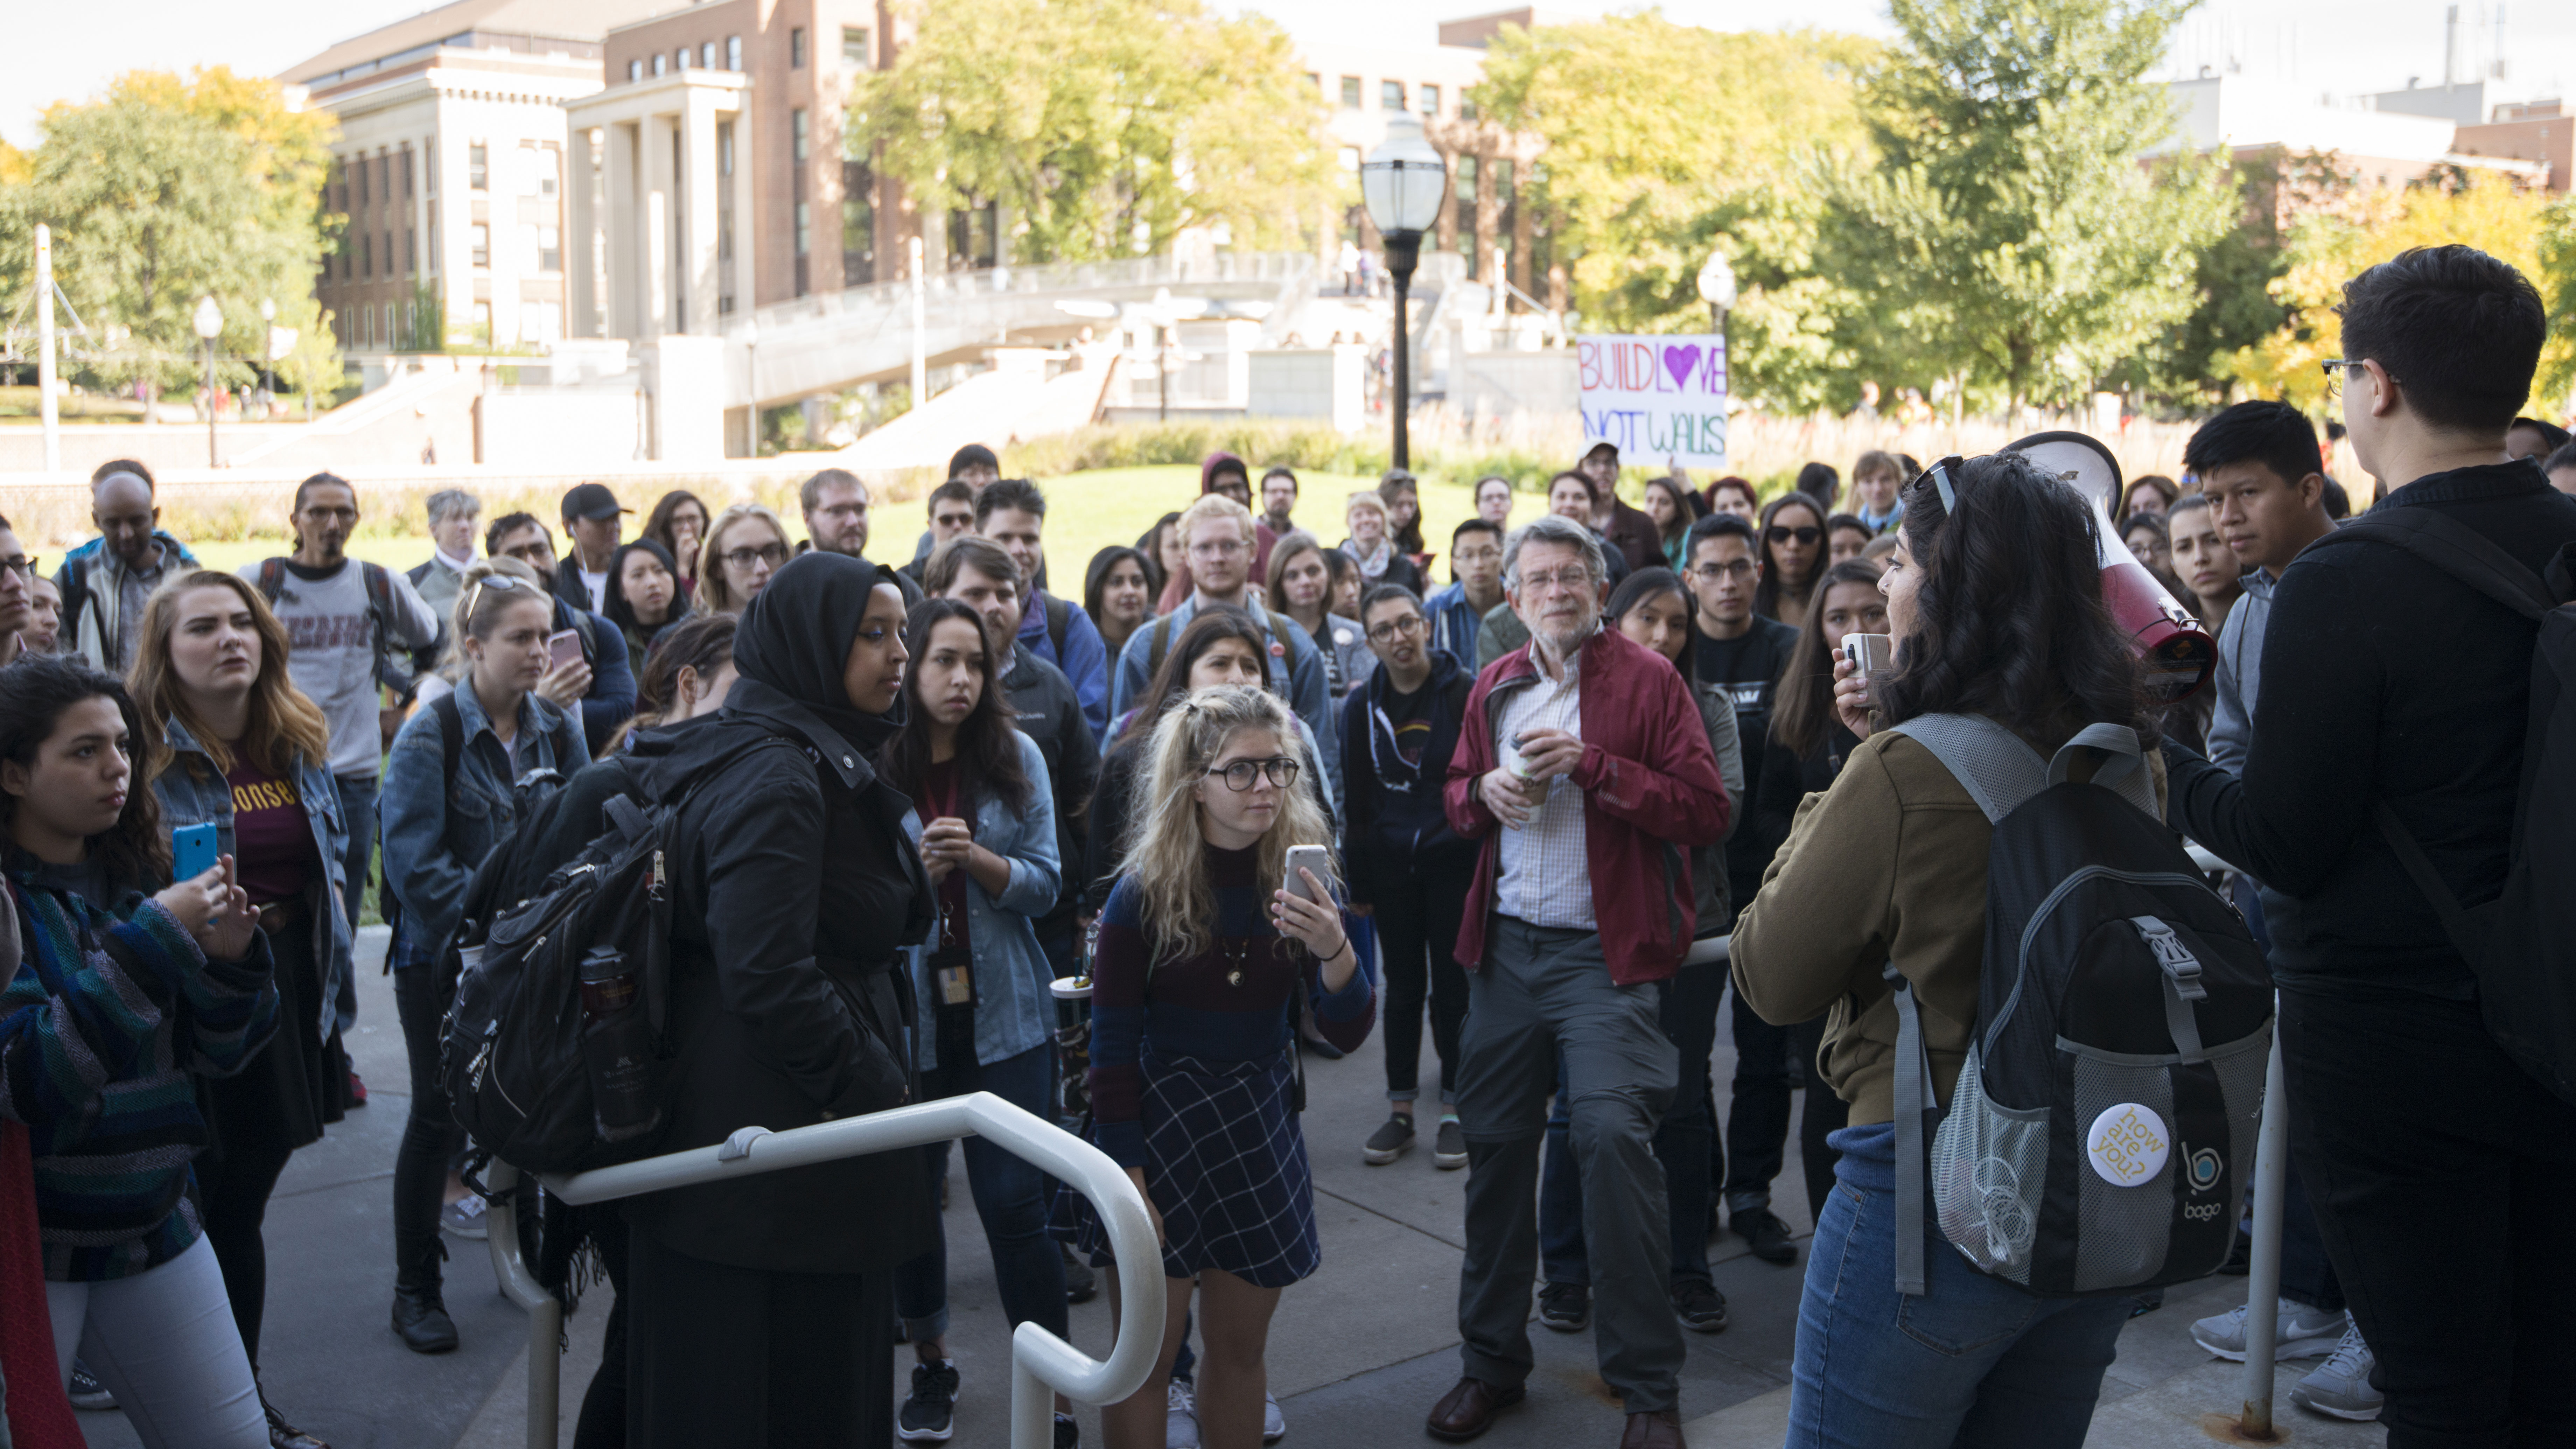 hate speech in colleges Free speech has once again become a highly charged issue on college campuses, where protests frequently have interrupted, and in some cases halted, appearances by polarizing speakers.